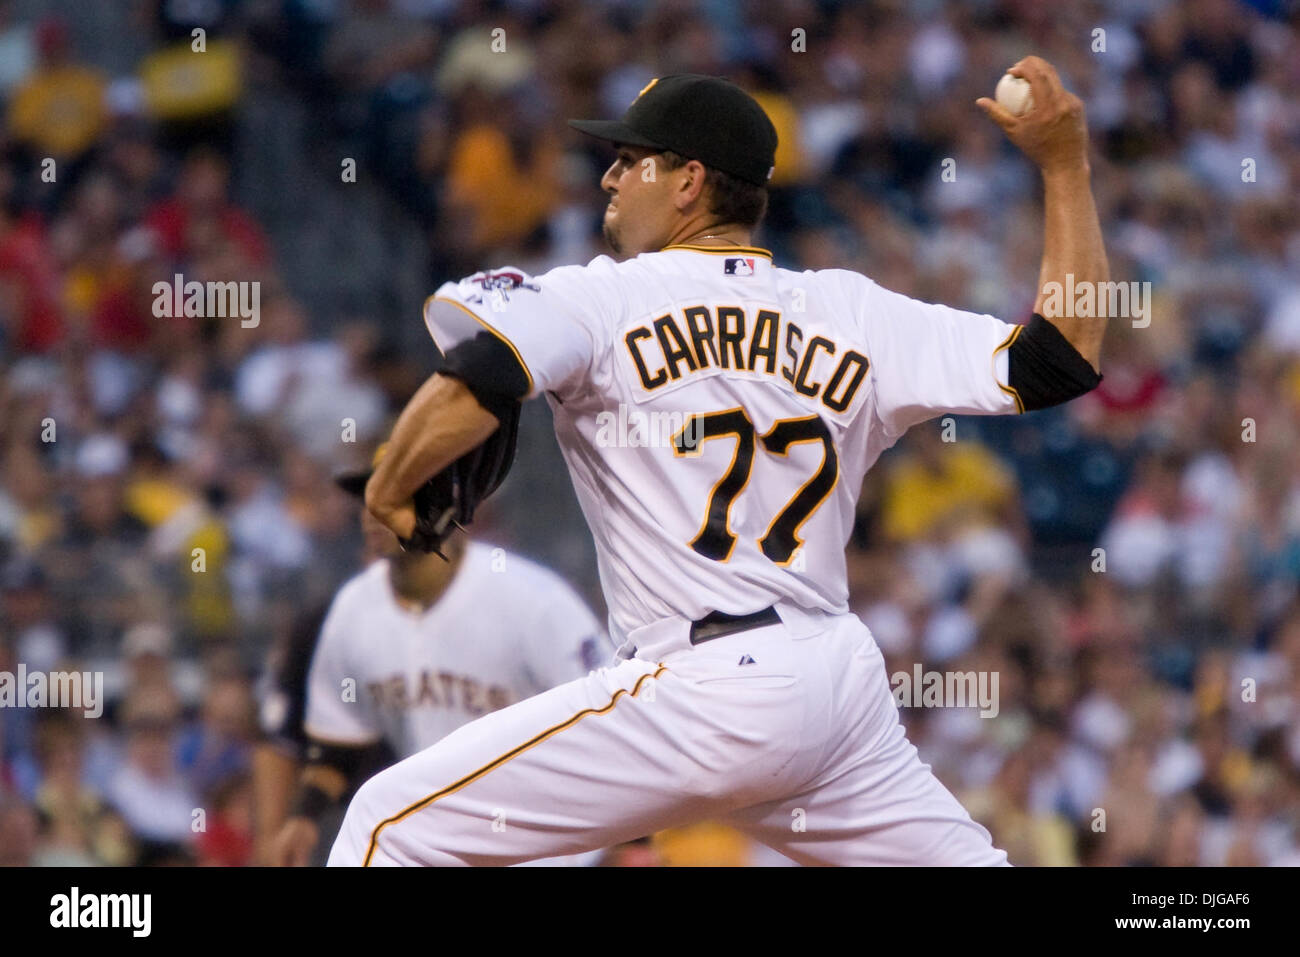 July 17, 2010 - Pittsburgh, Pennsylvania, United States of America - 17 July 2010: Pittsburgh Pirates relief pitcher D.J. Carrasco (77) fires a pitch to the plate during the National League game between the Houston Astros and the Pittsburgh Pirates.  The Pirates defeated the Astros 12-6 before 36,665 fans at PNC Park in Pittsburgh PA.  Mandatory Credit: Frank Jansky / Southcreek Gl - Stock Image